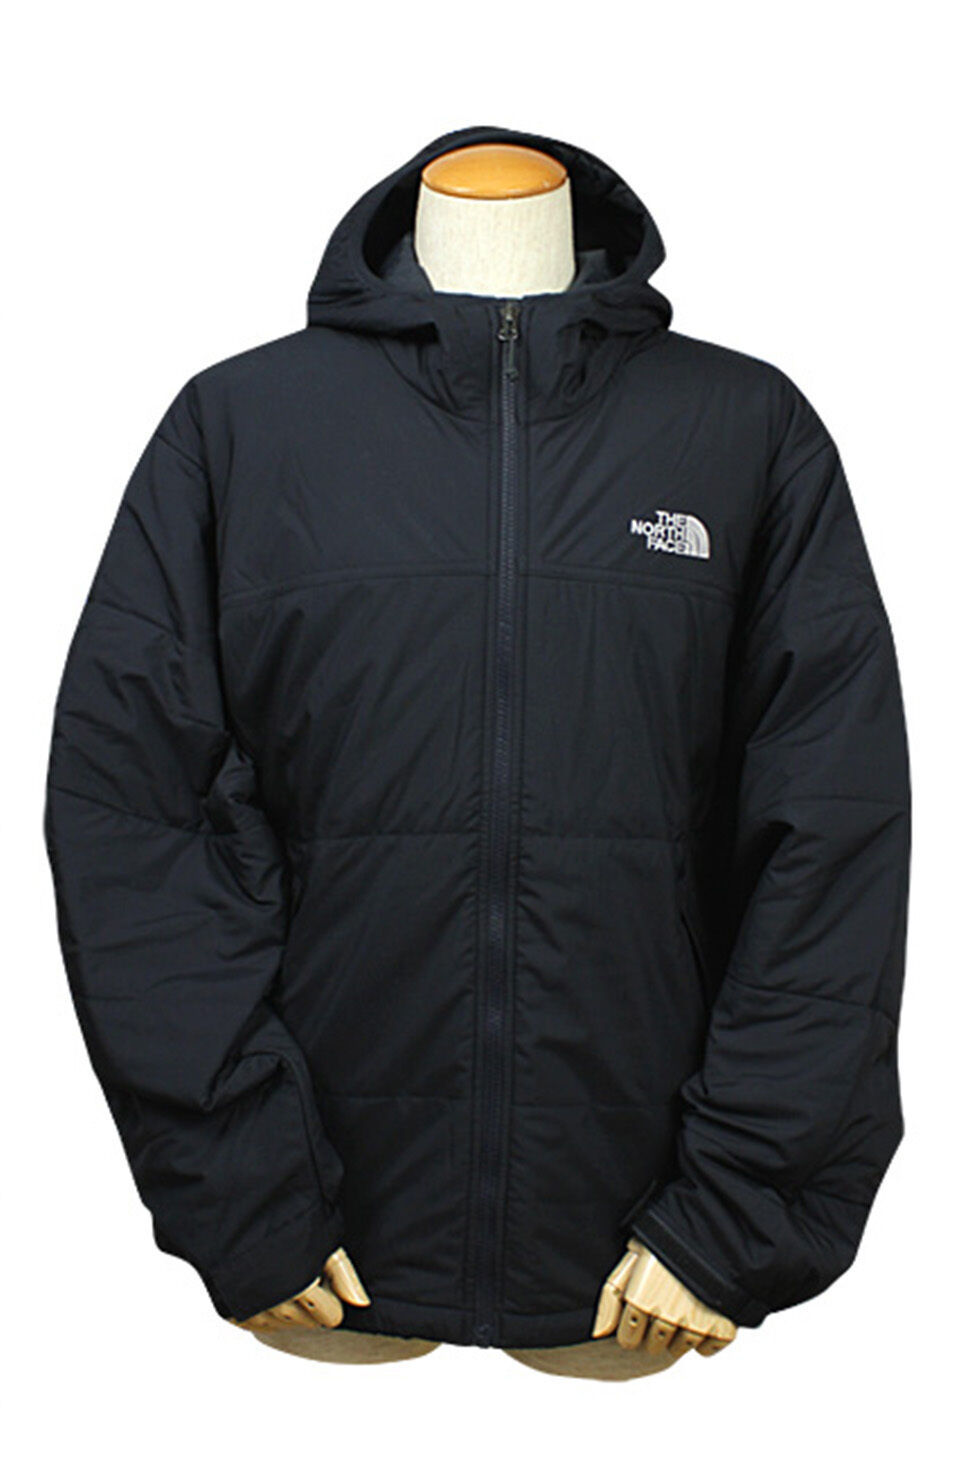 THE NORTH FACE NWT MENS TNF BLACK PACKED POWDER JACKET SIZE M MEDIUM $150 7316